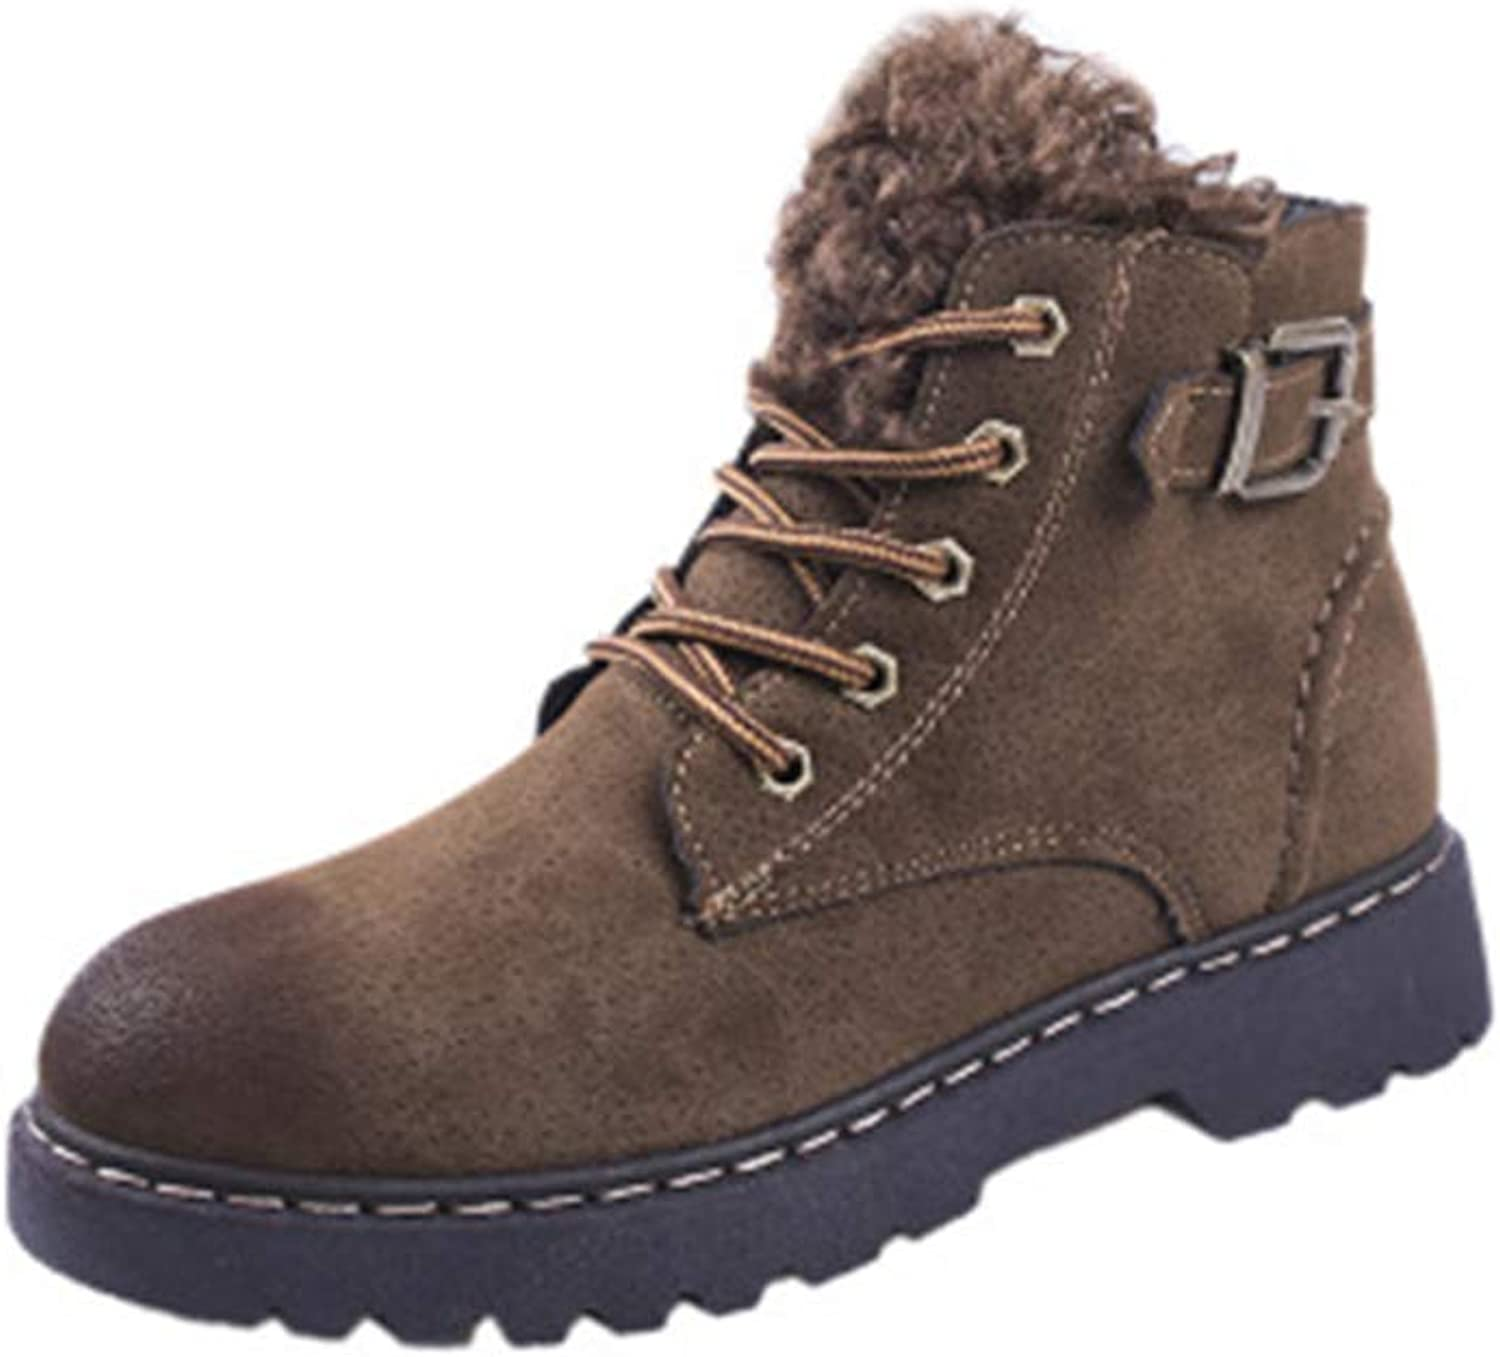 MINIKATA Womens Retro Winter Lace Up Boots Ladies Martin Ankle Boot Work Hiking shoes